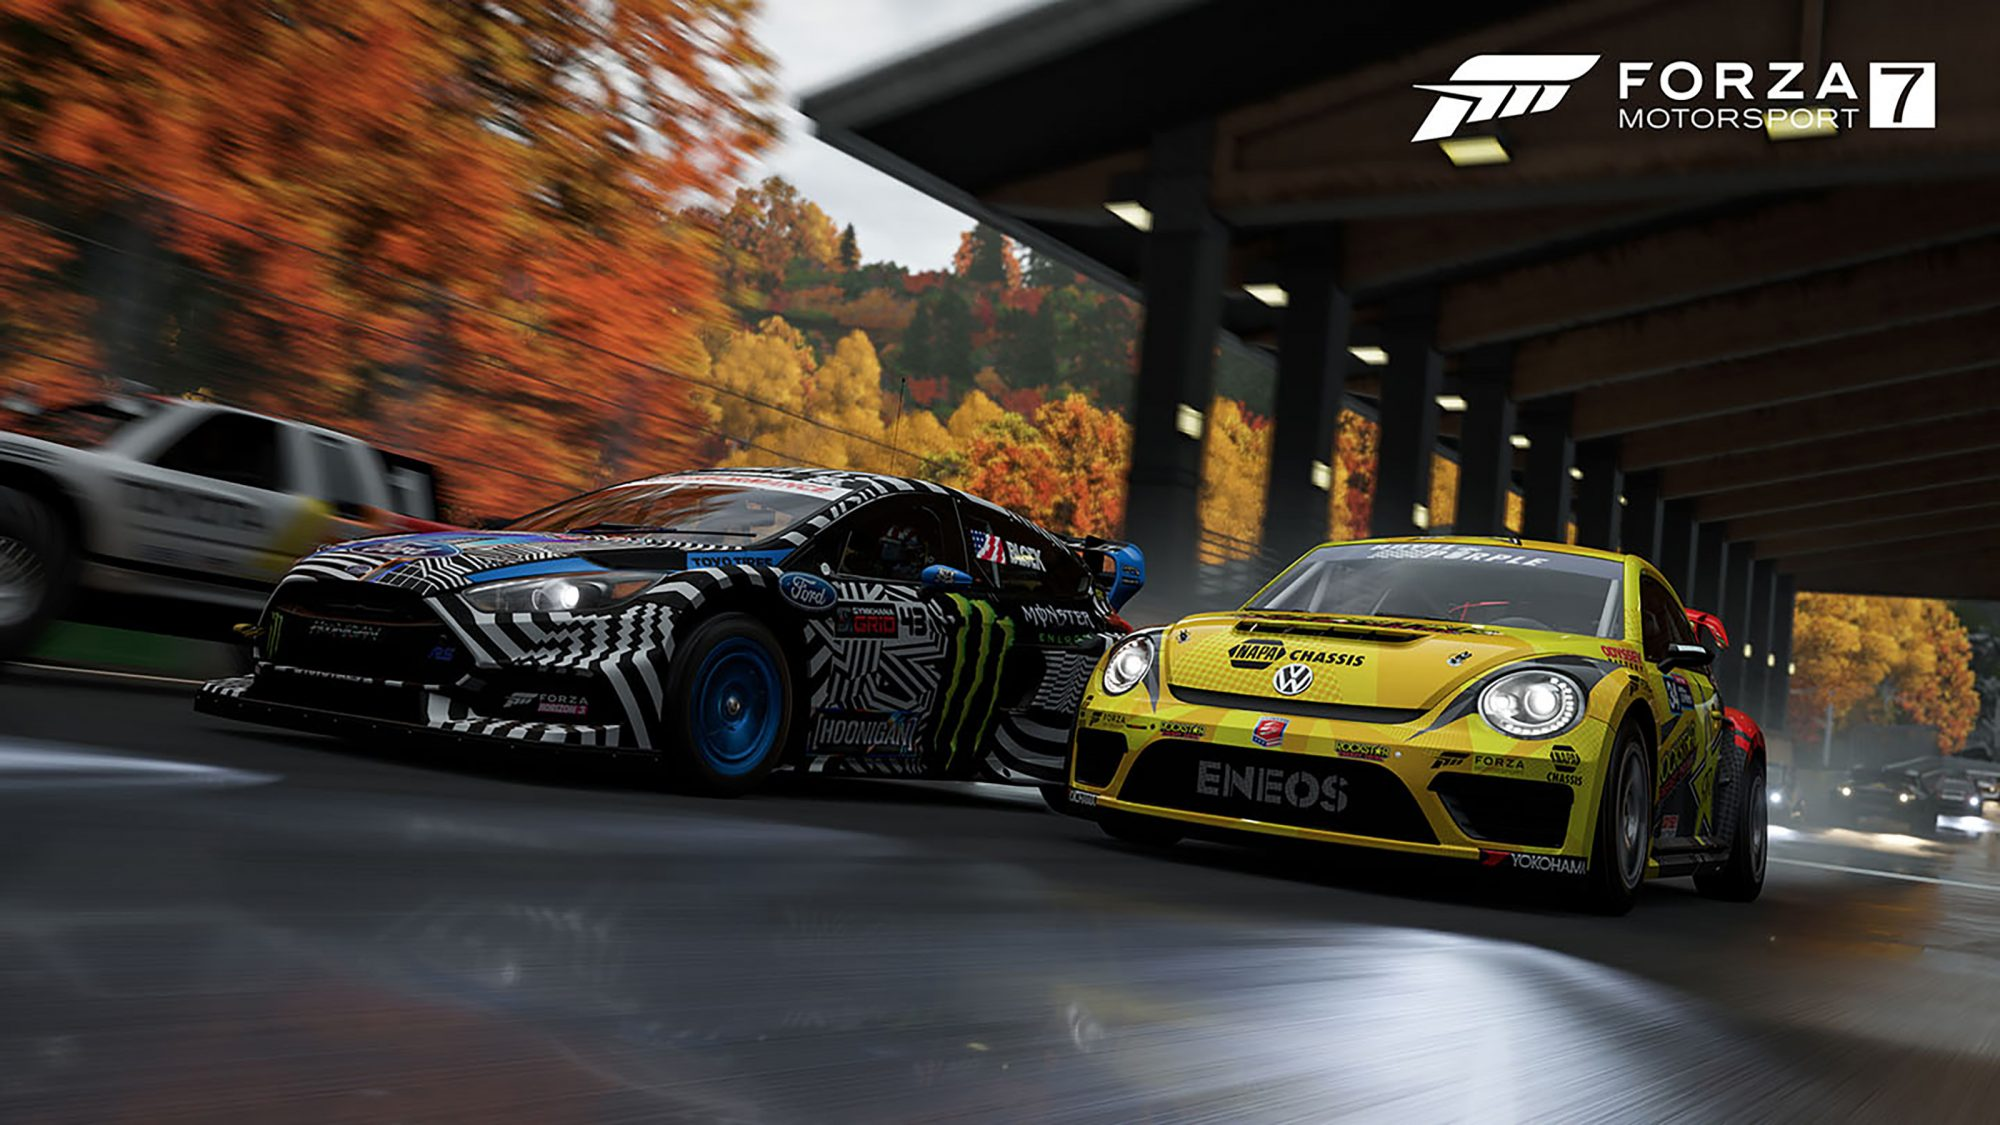 Forza Motorsport 7 Reviews Neck and Neck